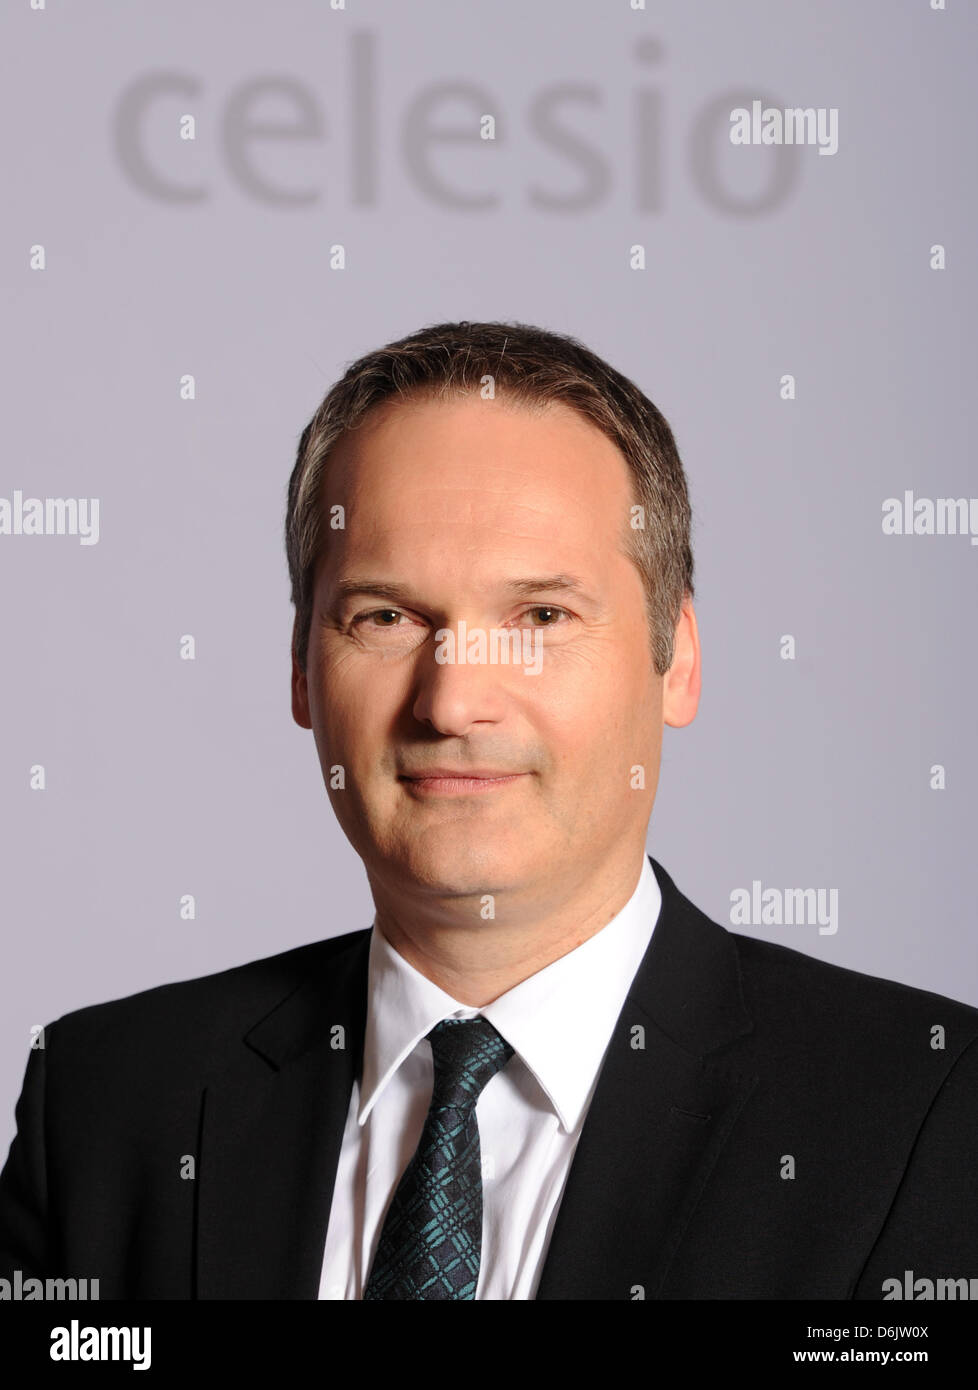 The new CEO of the German healthcare and pharmaceutical company Celesio, Markus Pinger, is seen during the company's - Stock Image